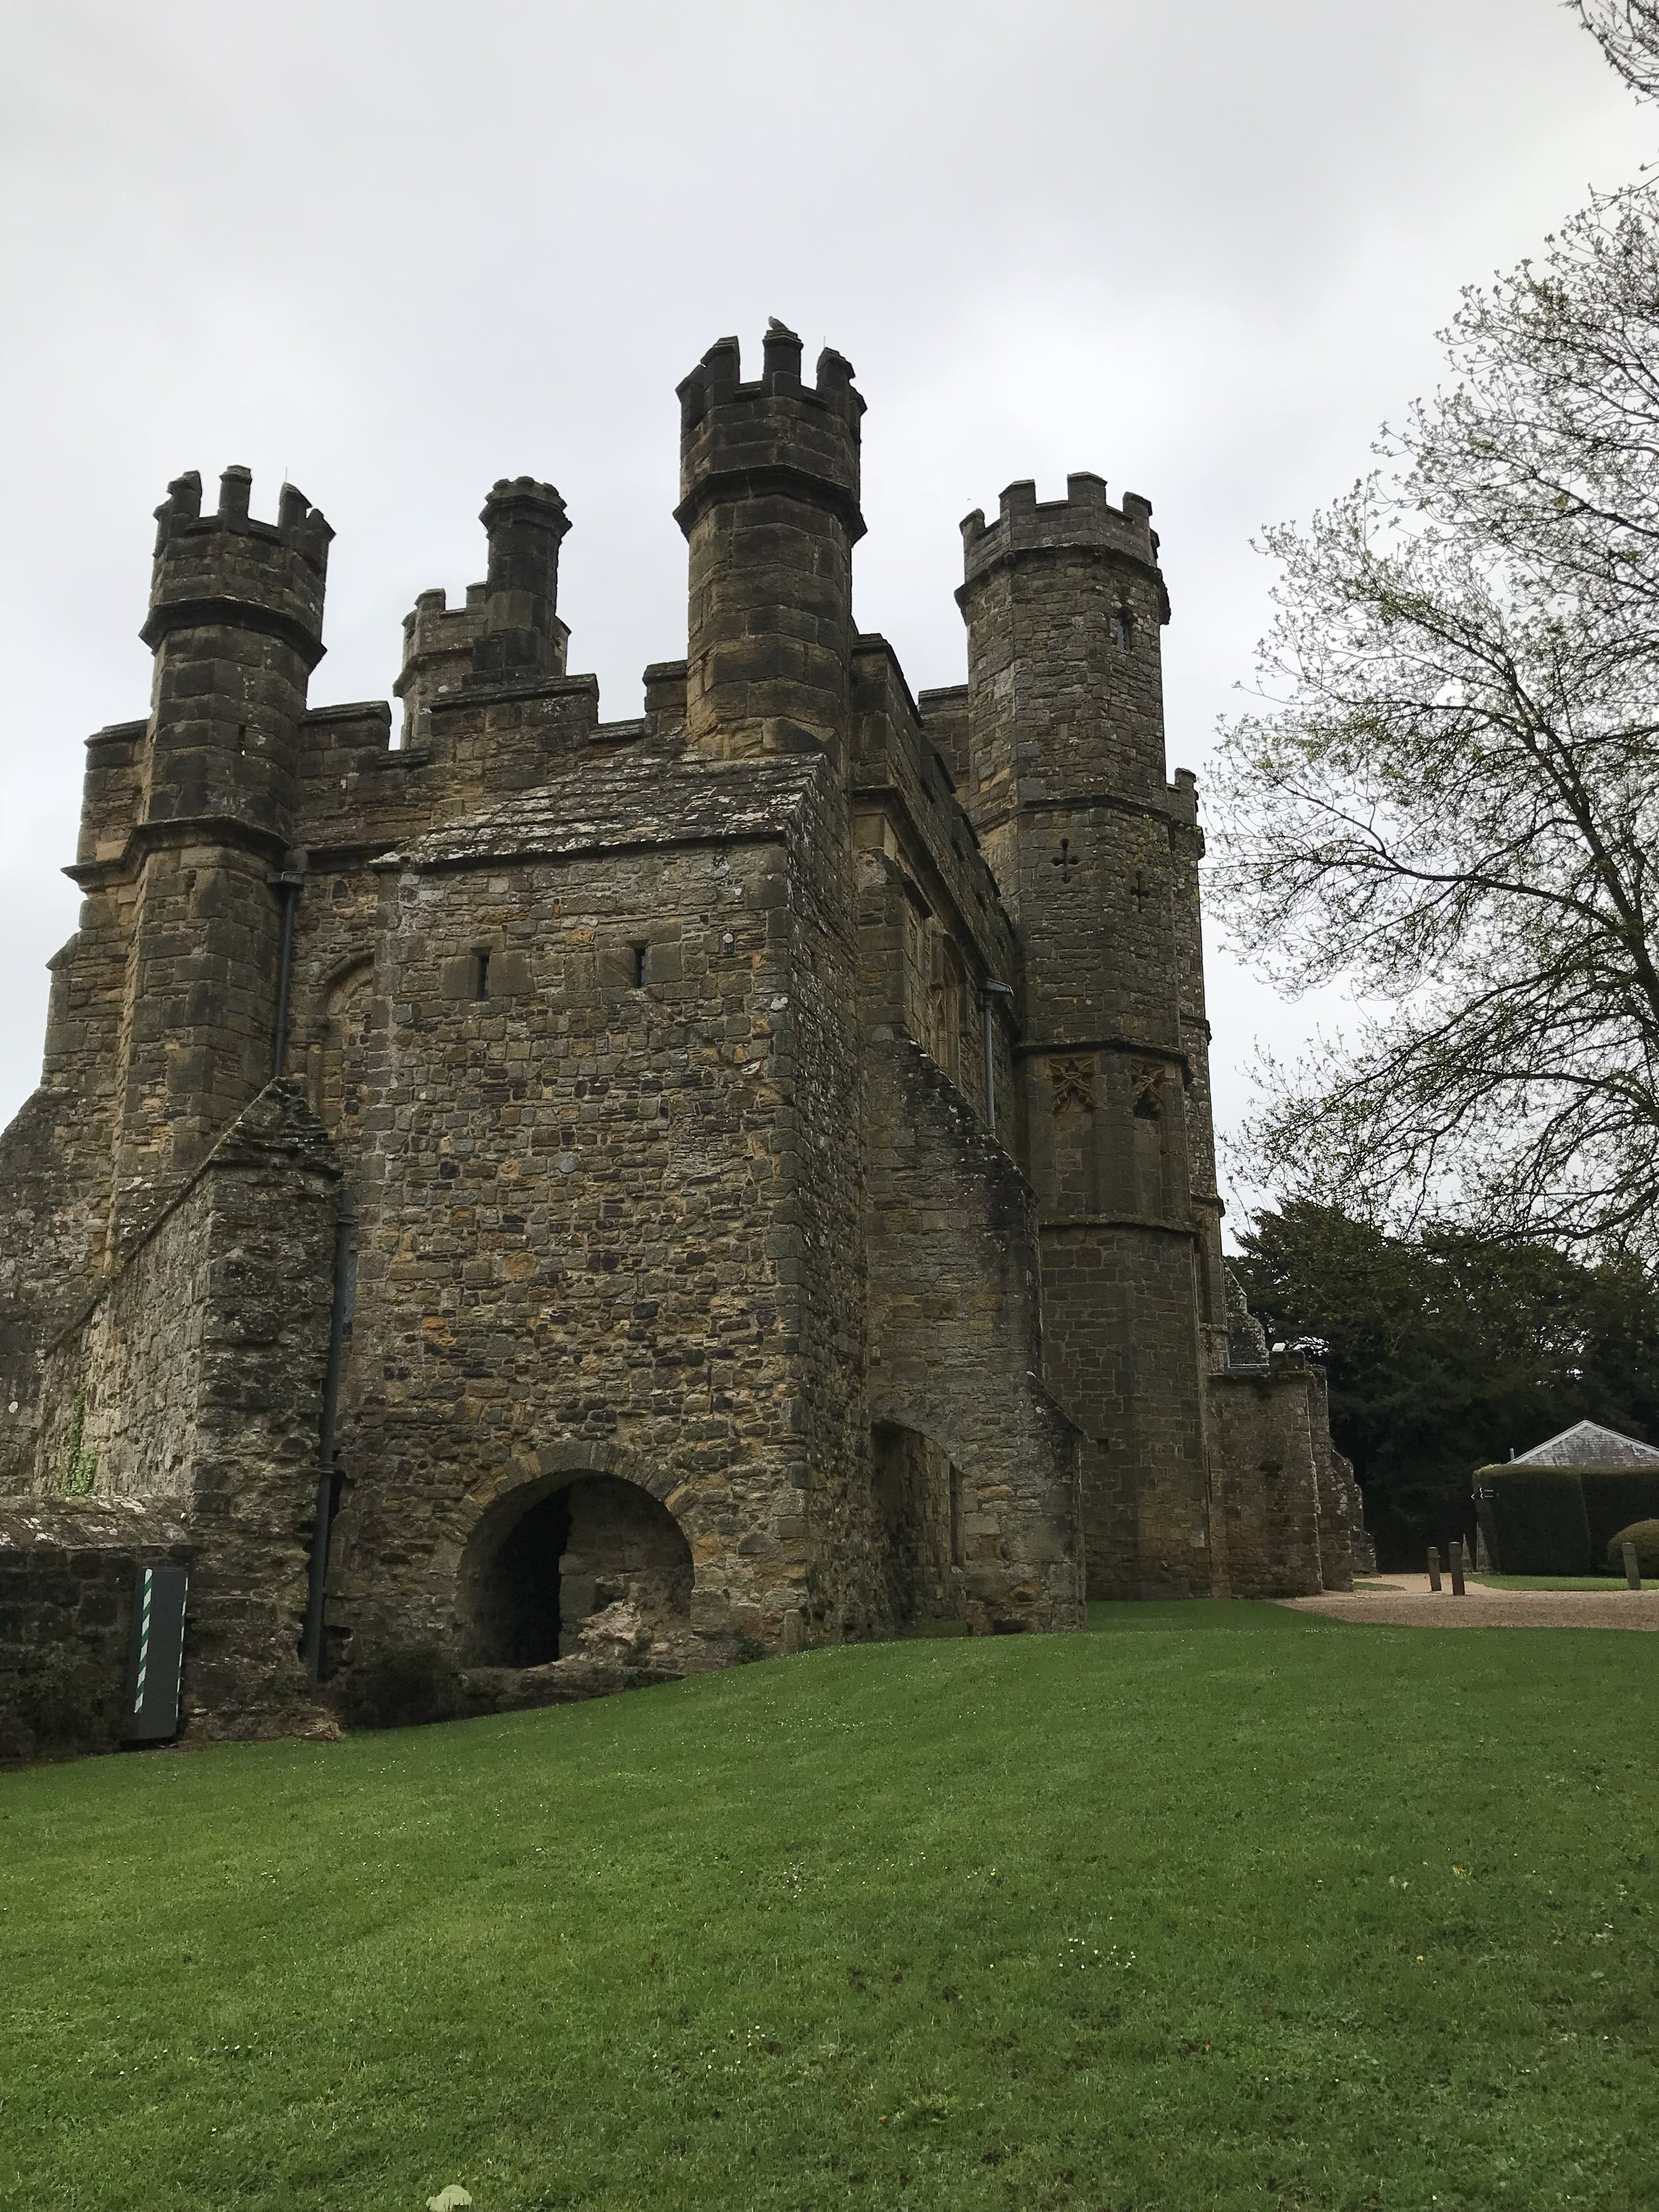 The entrance tower to the Battle Abbey